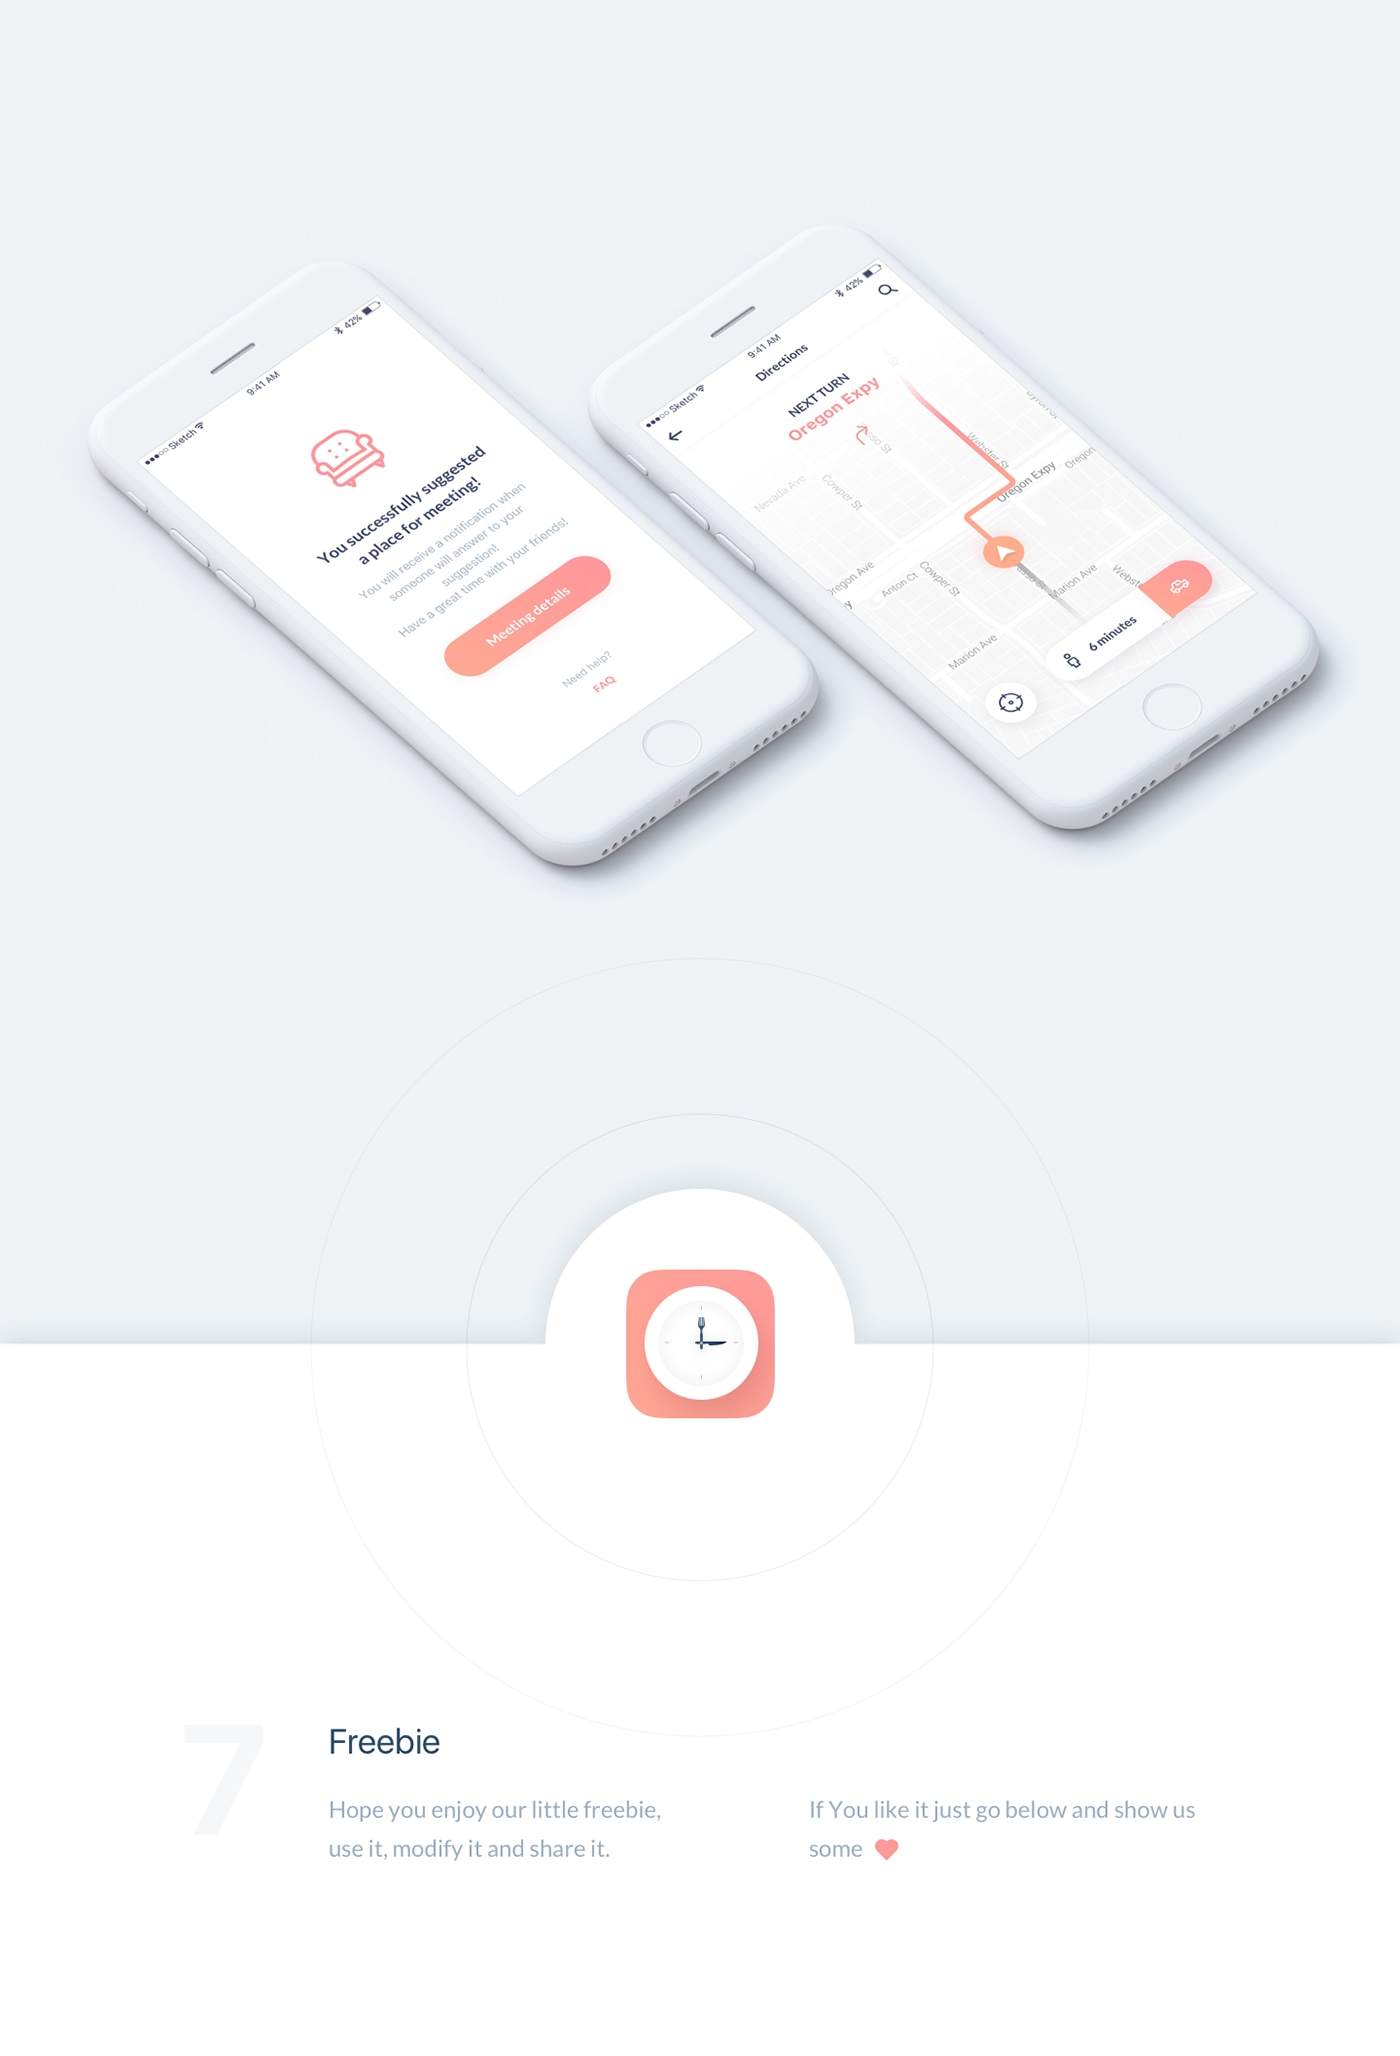 LunchTime - Mobile App Design - Clean, minimal and pixel perfect iOS mobile app design